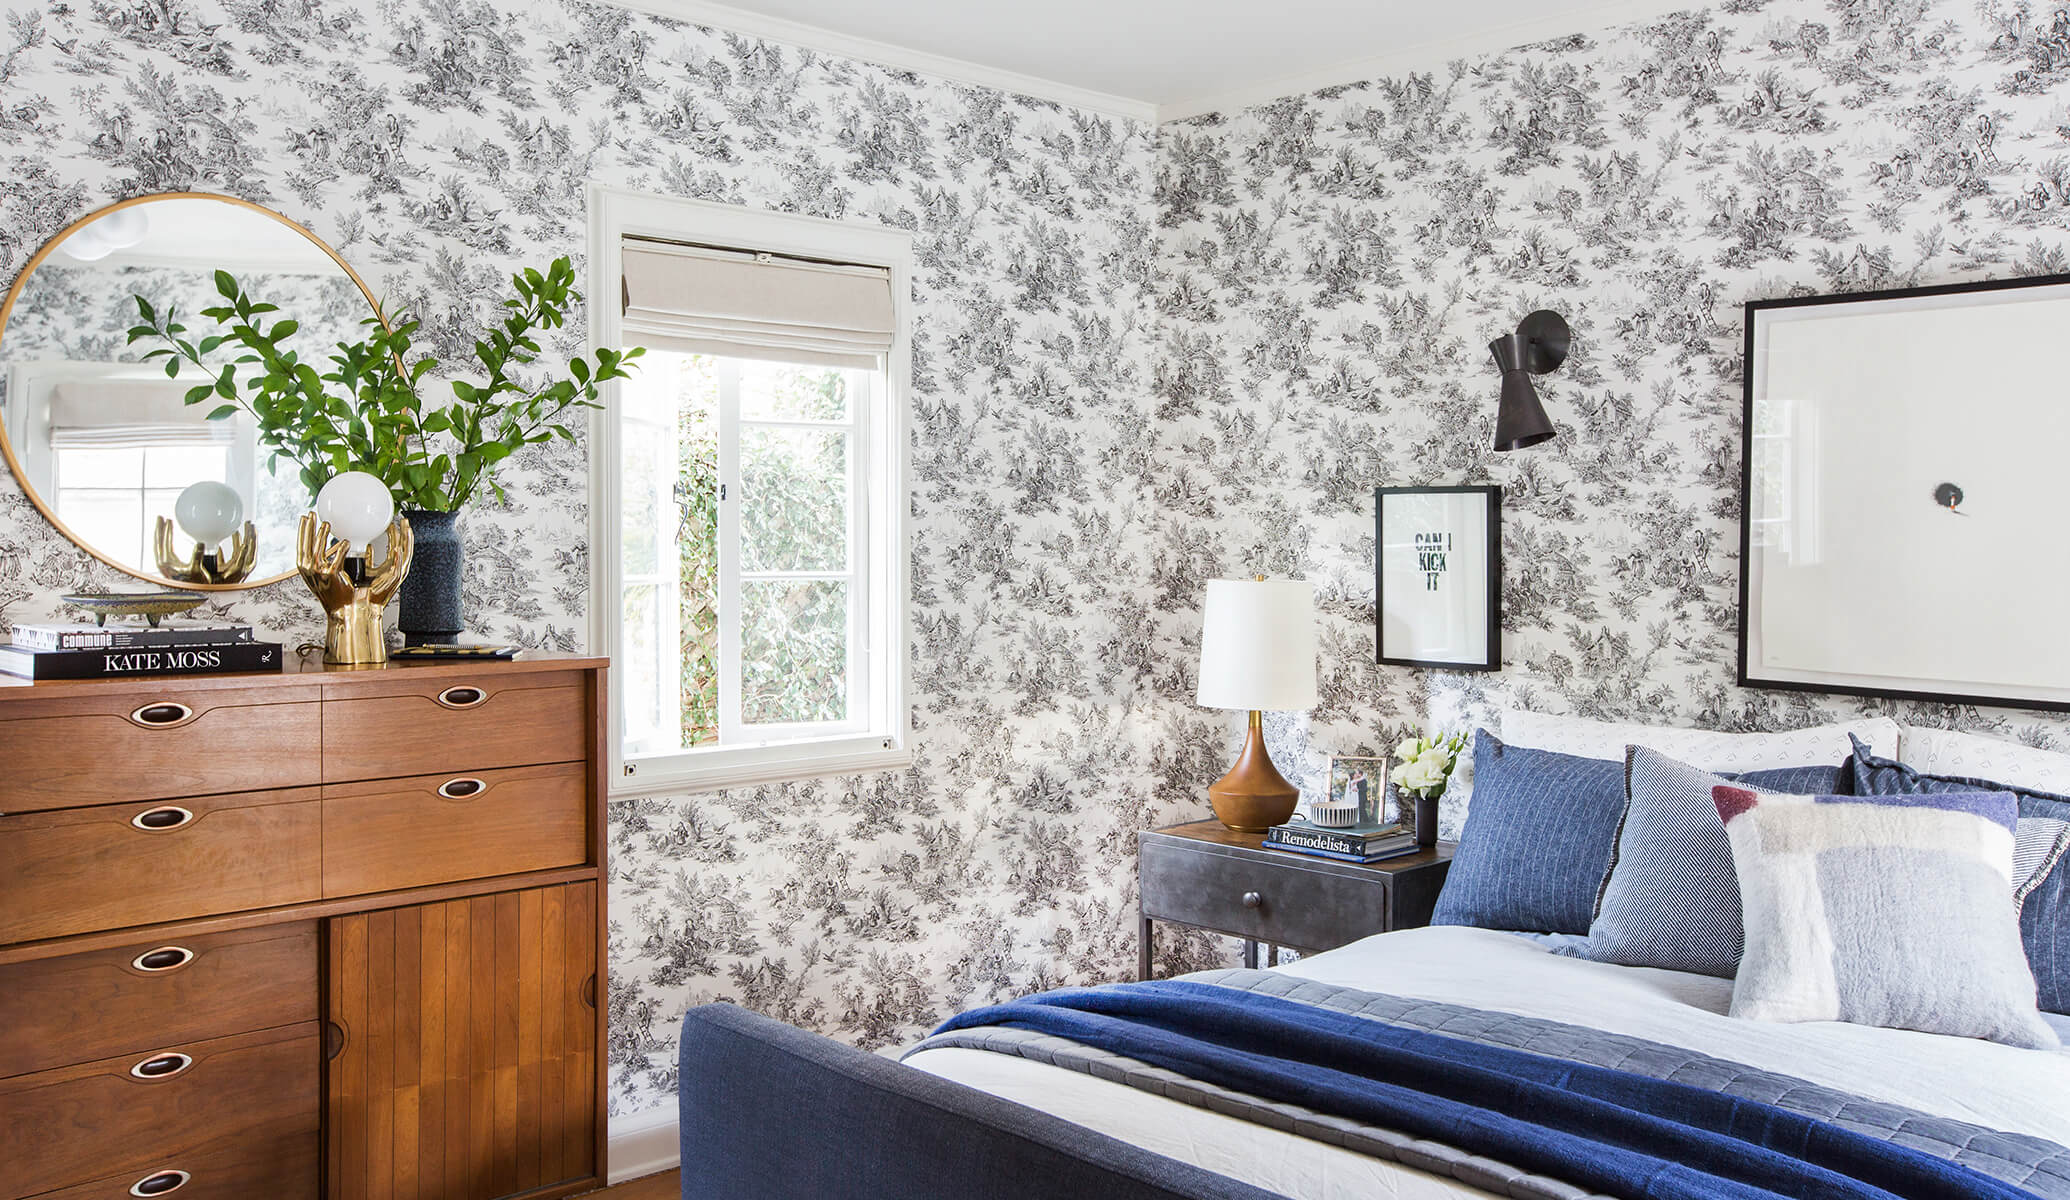 GINNY_MACDONALD_TOILE WALLPAPER_2070x1200x300